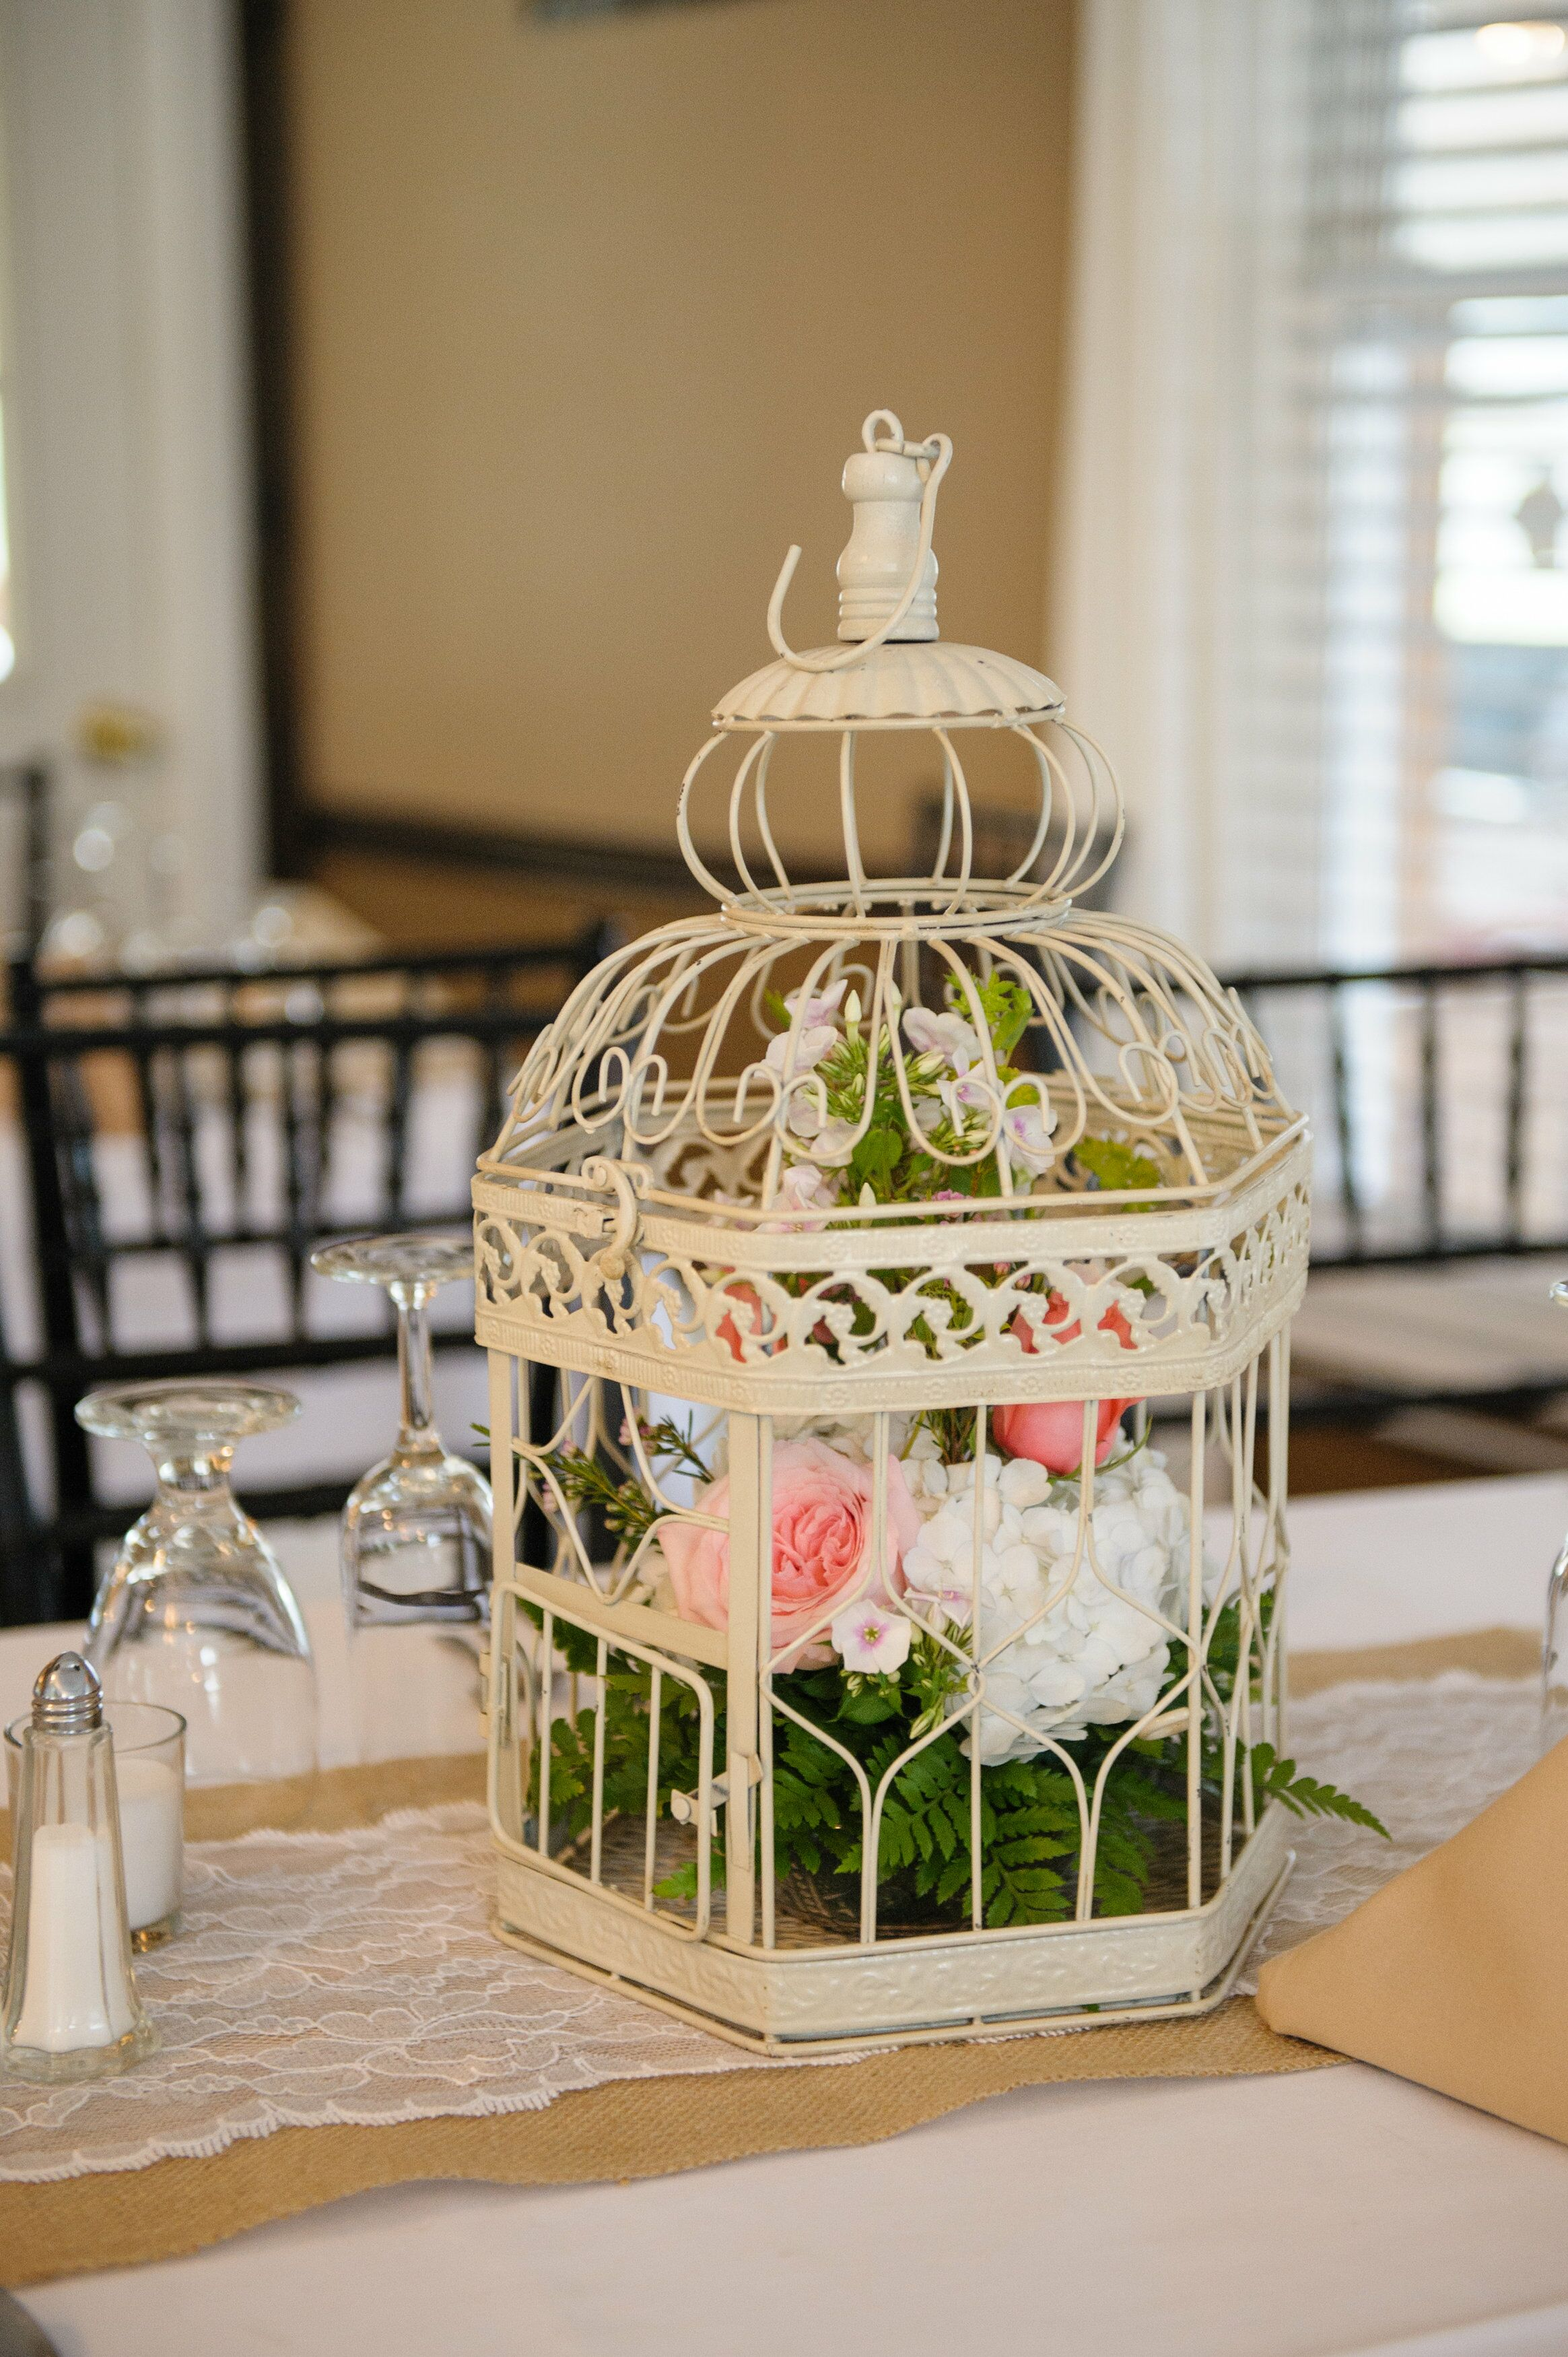 Flowers in vintage birdcage centerpiece